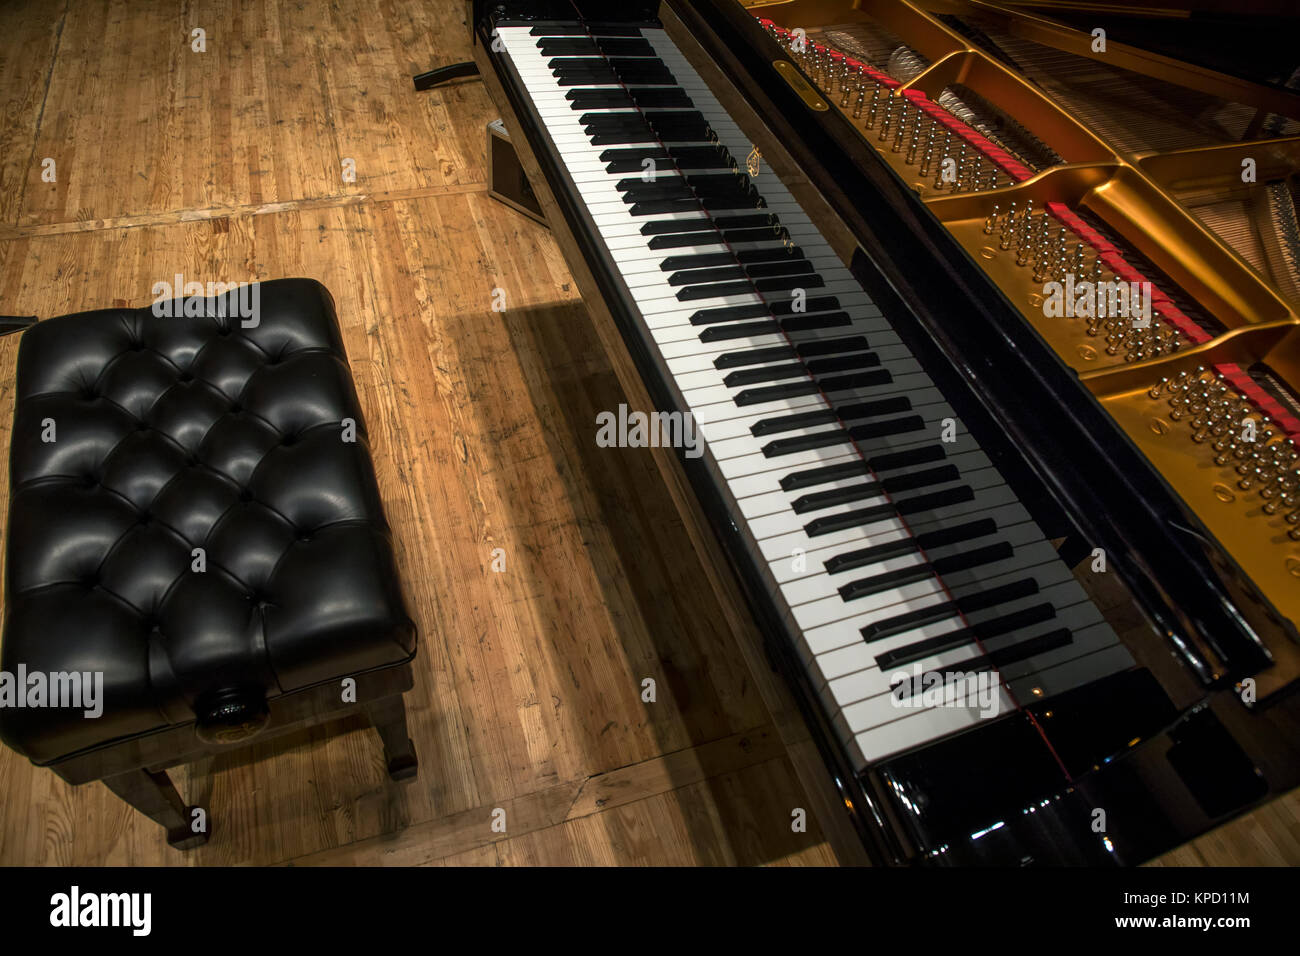 View of grand piano at concert stage - Stock Image